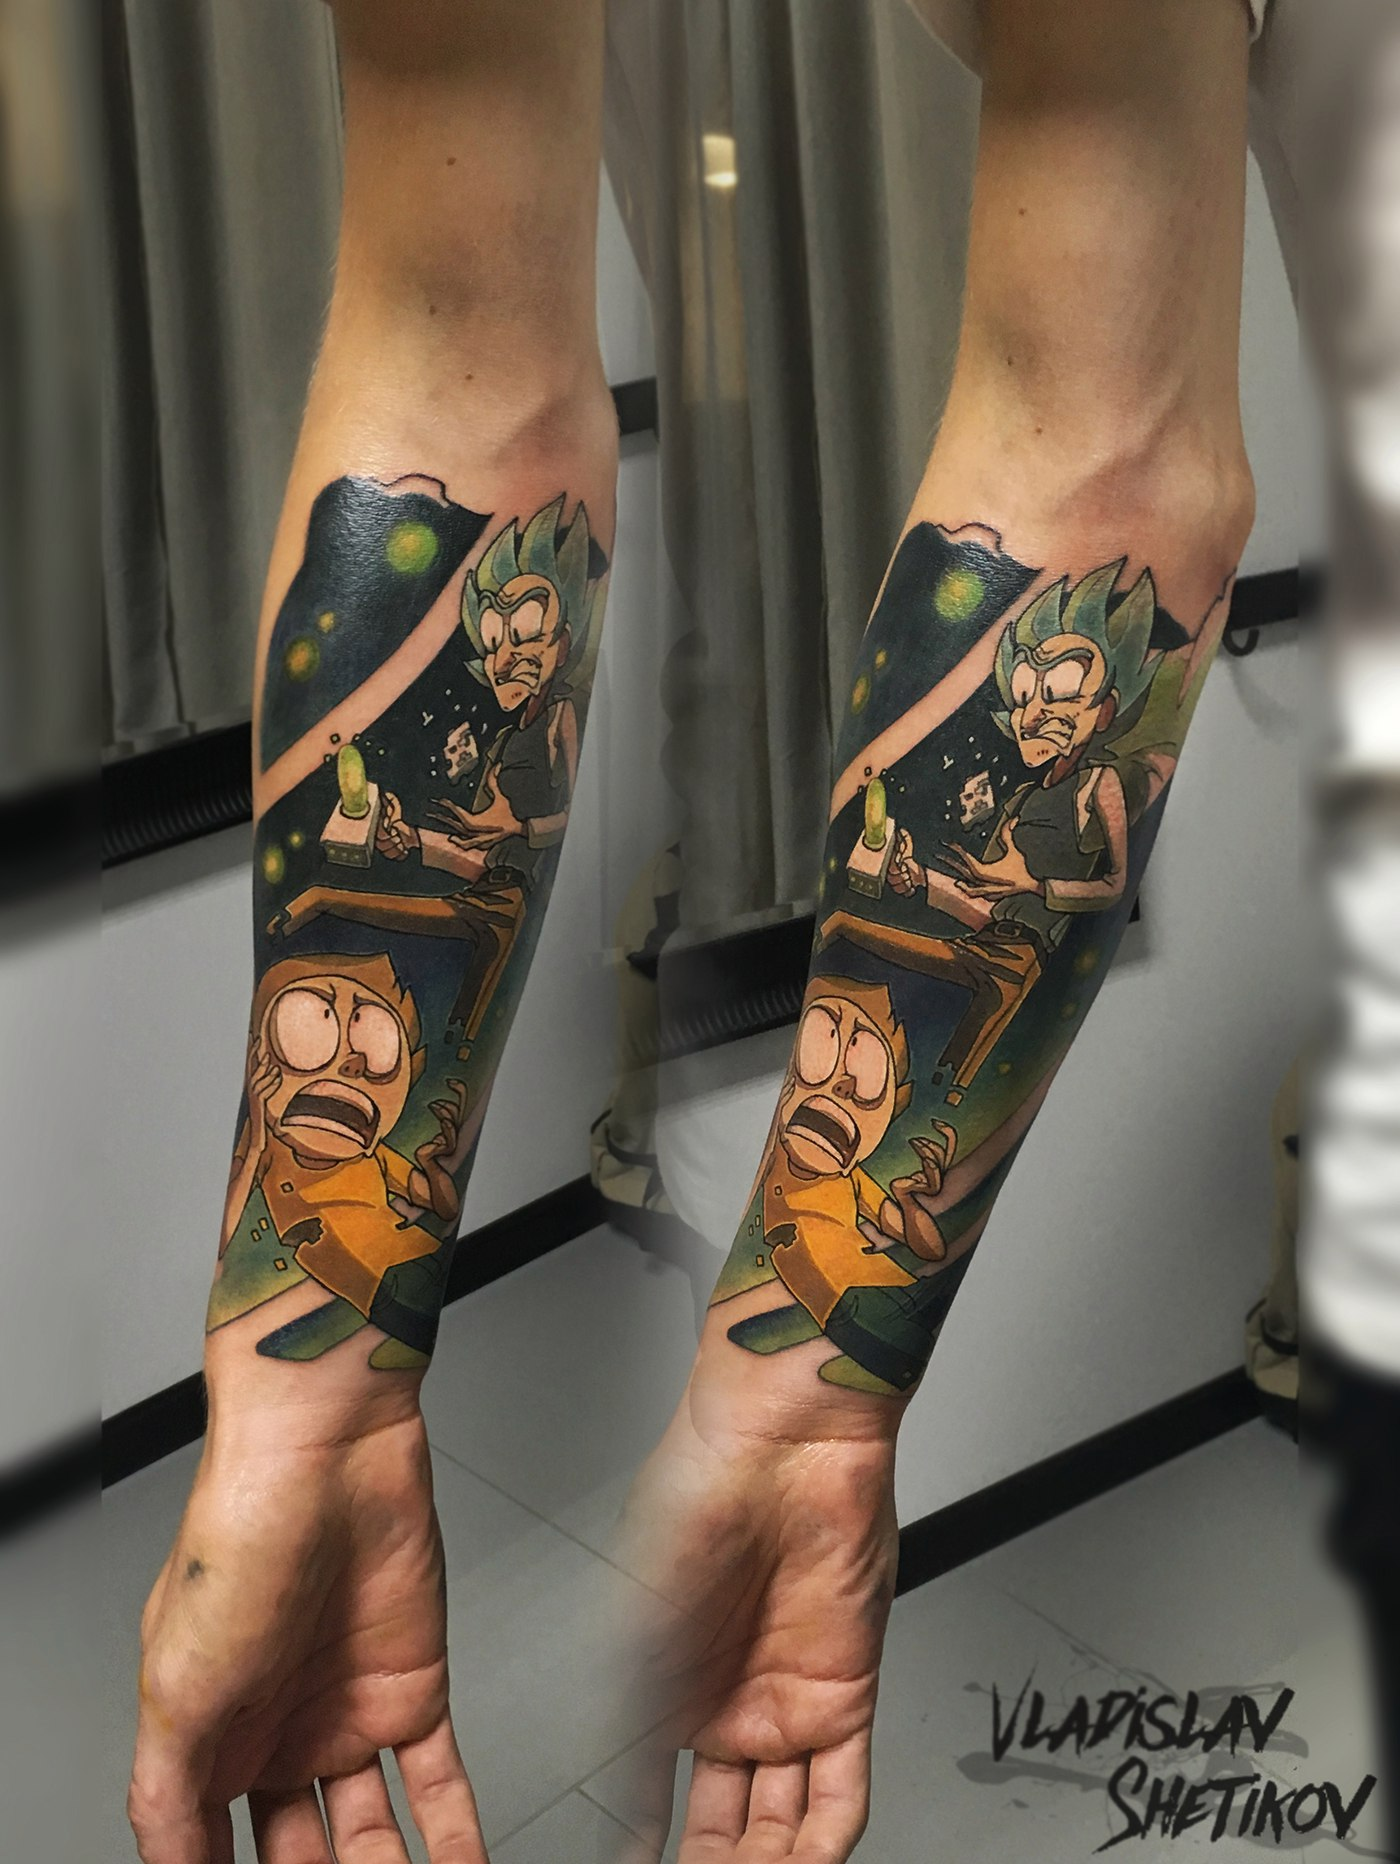 Cool rick and morty carttoon tattoo on forearm